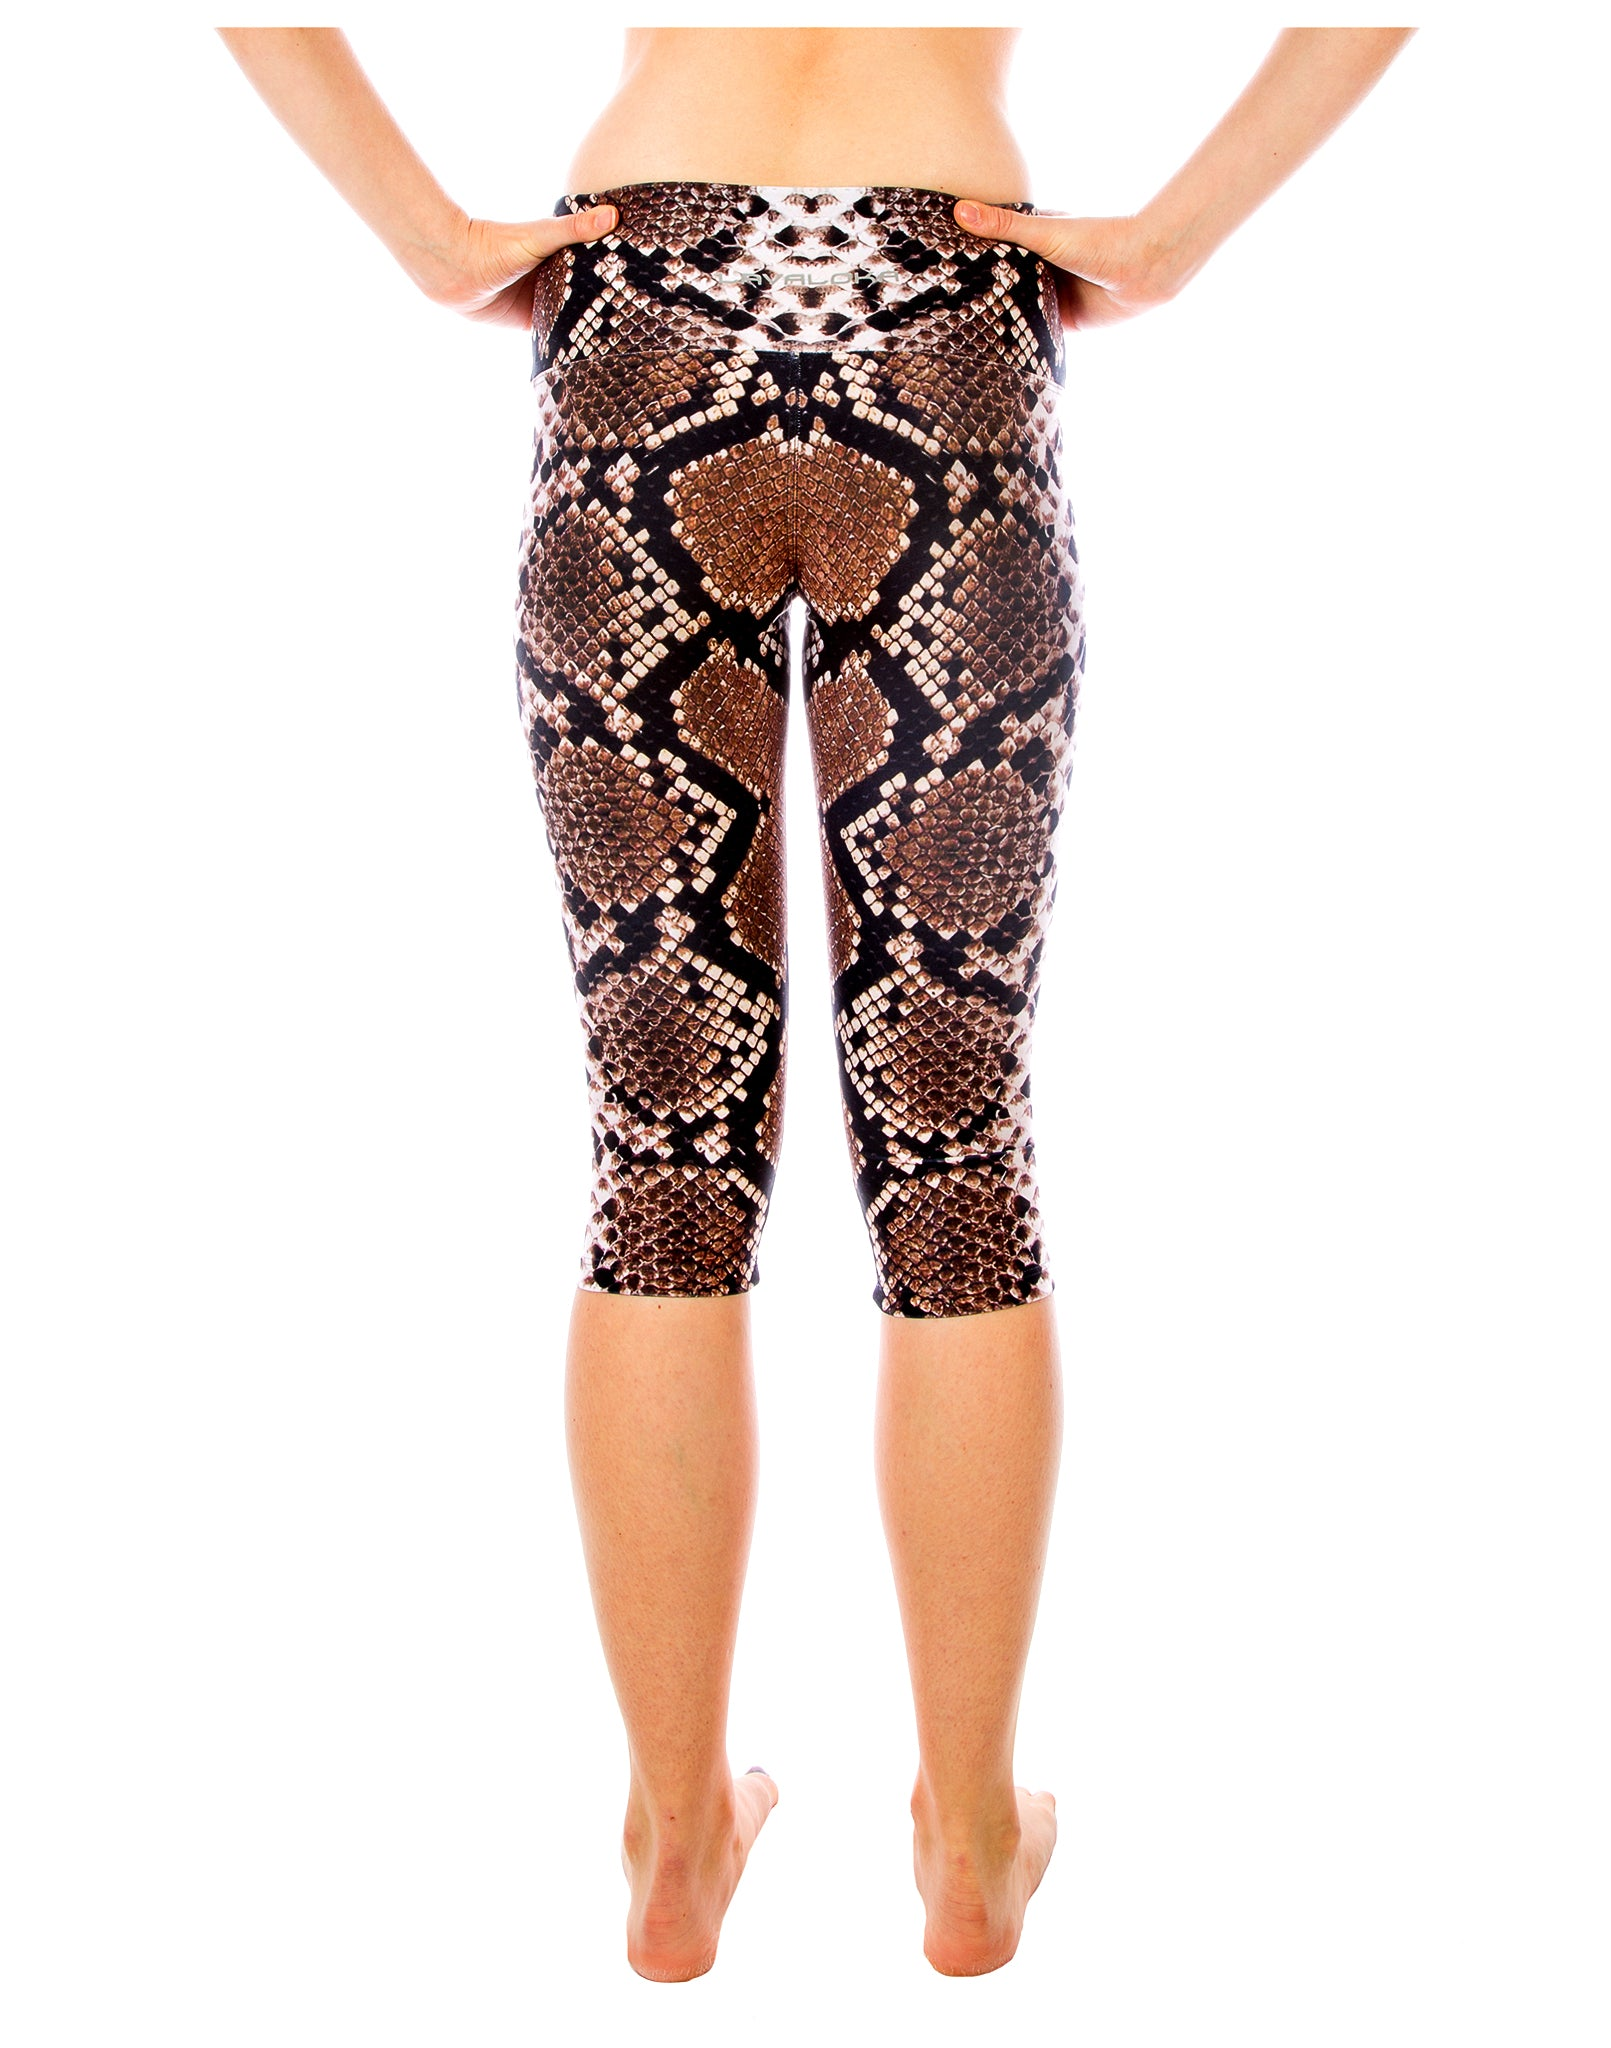 Black & Brown Python Capri Yoga Pants